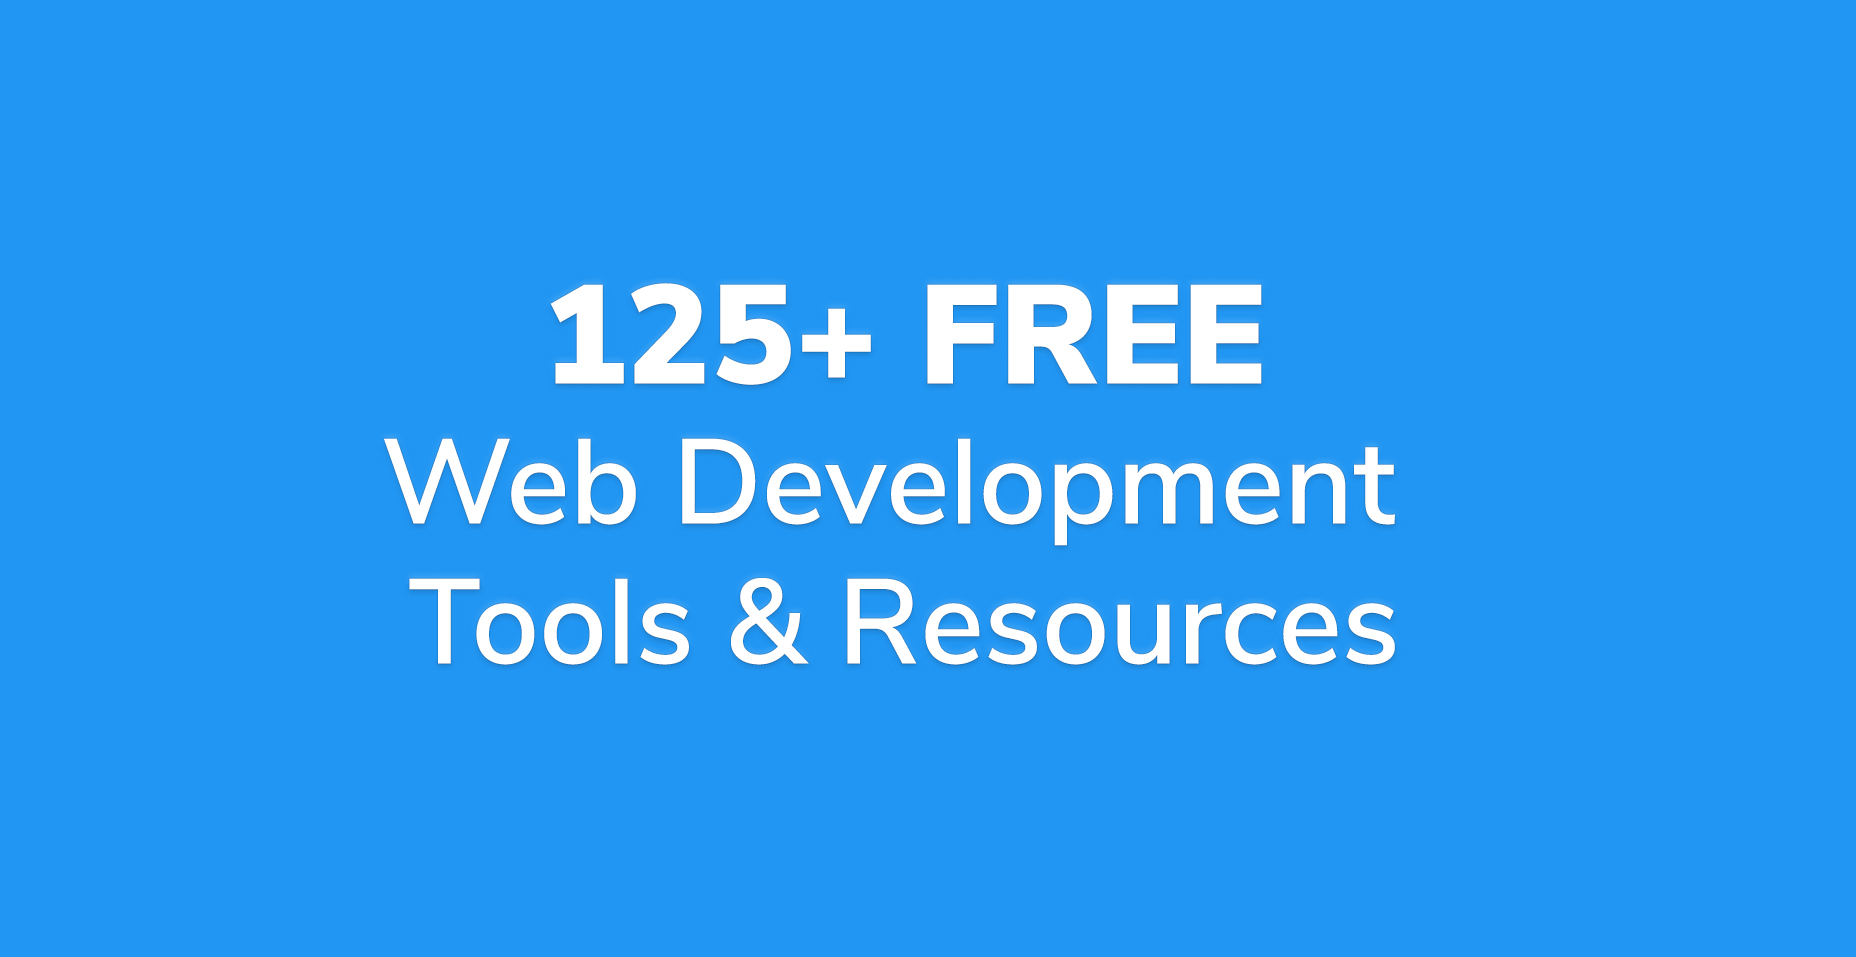 125+ Free Web Development Tools & Resources in 2018 | Code Wall